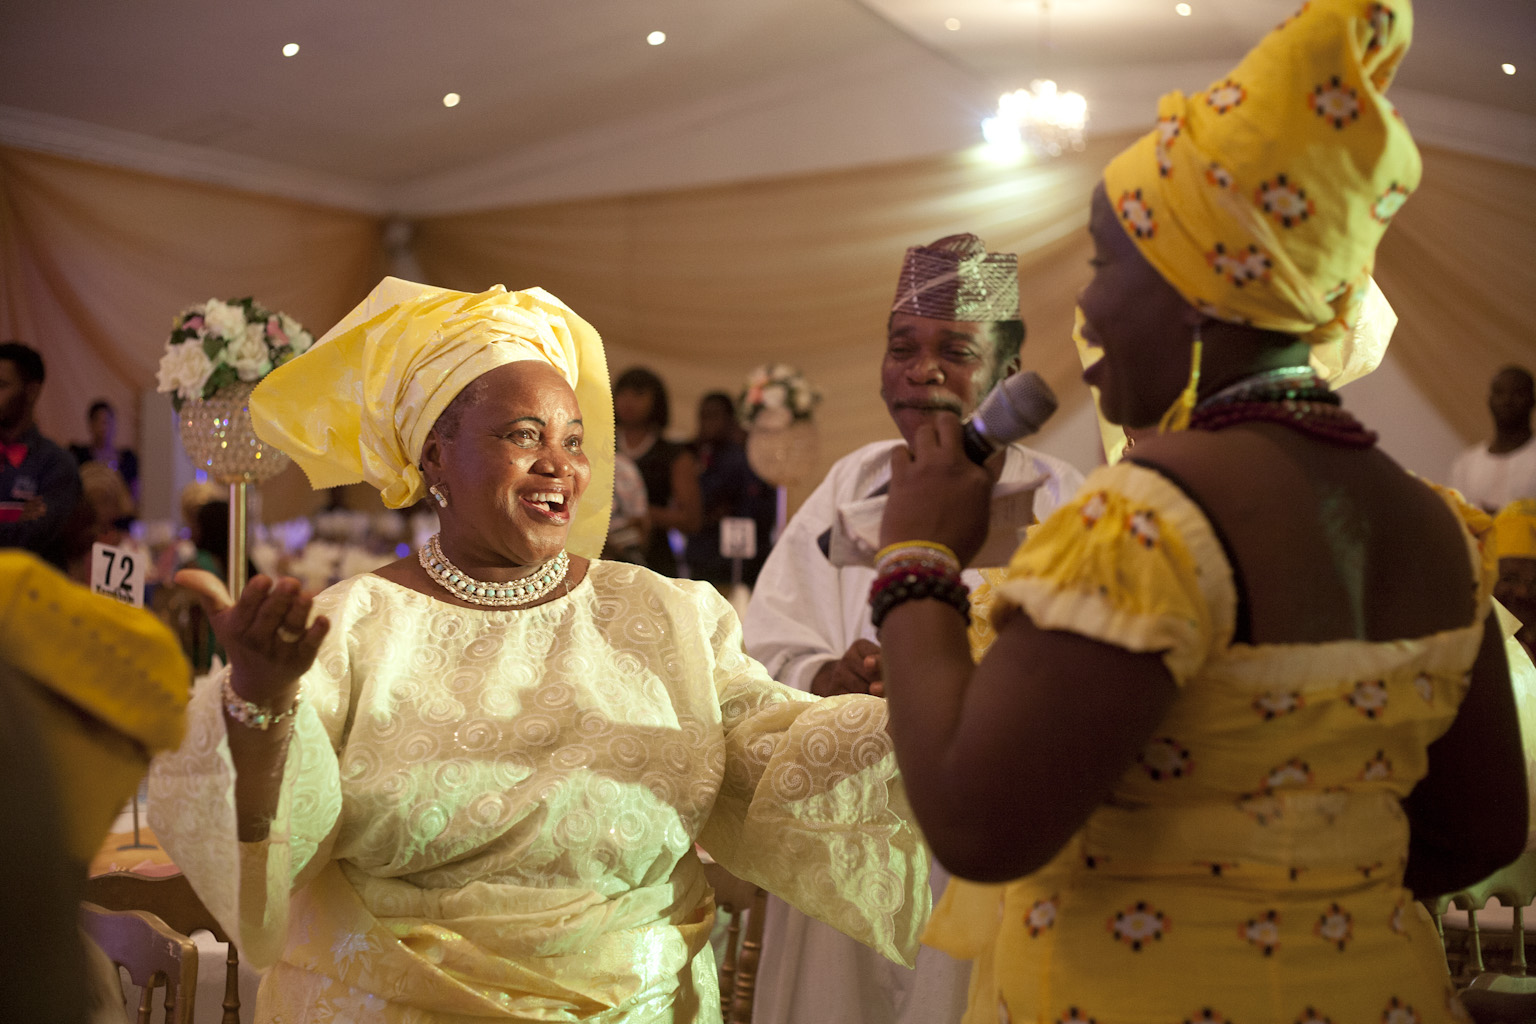 MLcom NigeriaMainWedding_39